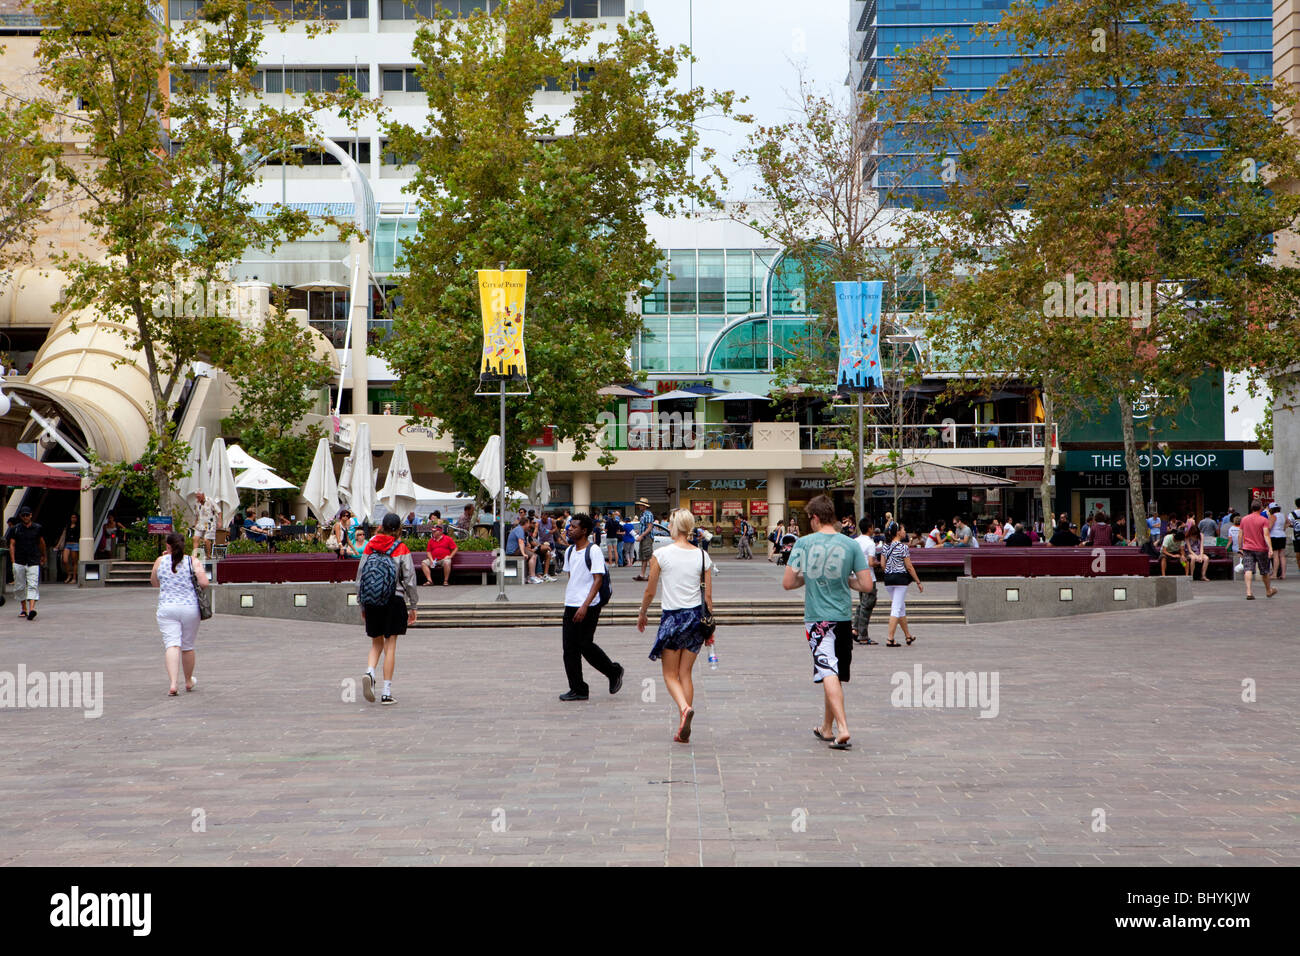 Forrest Place, Perth, Western Australia - Stock Image